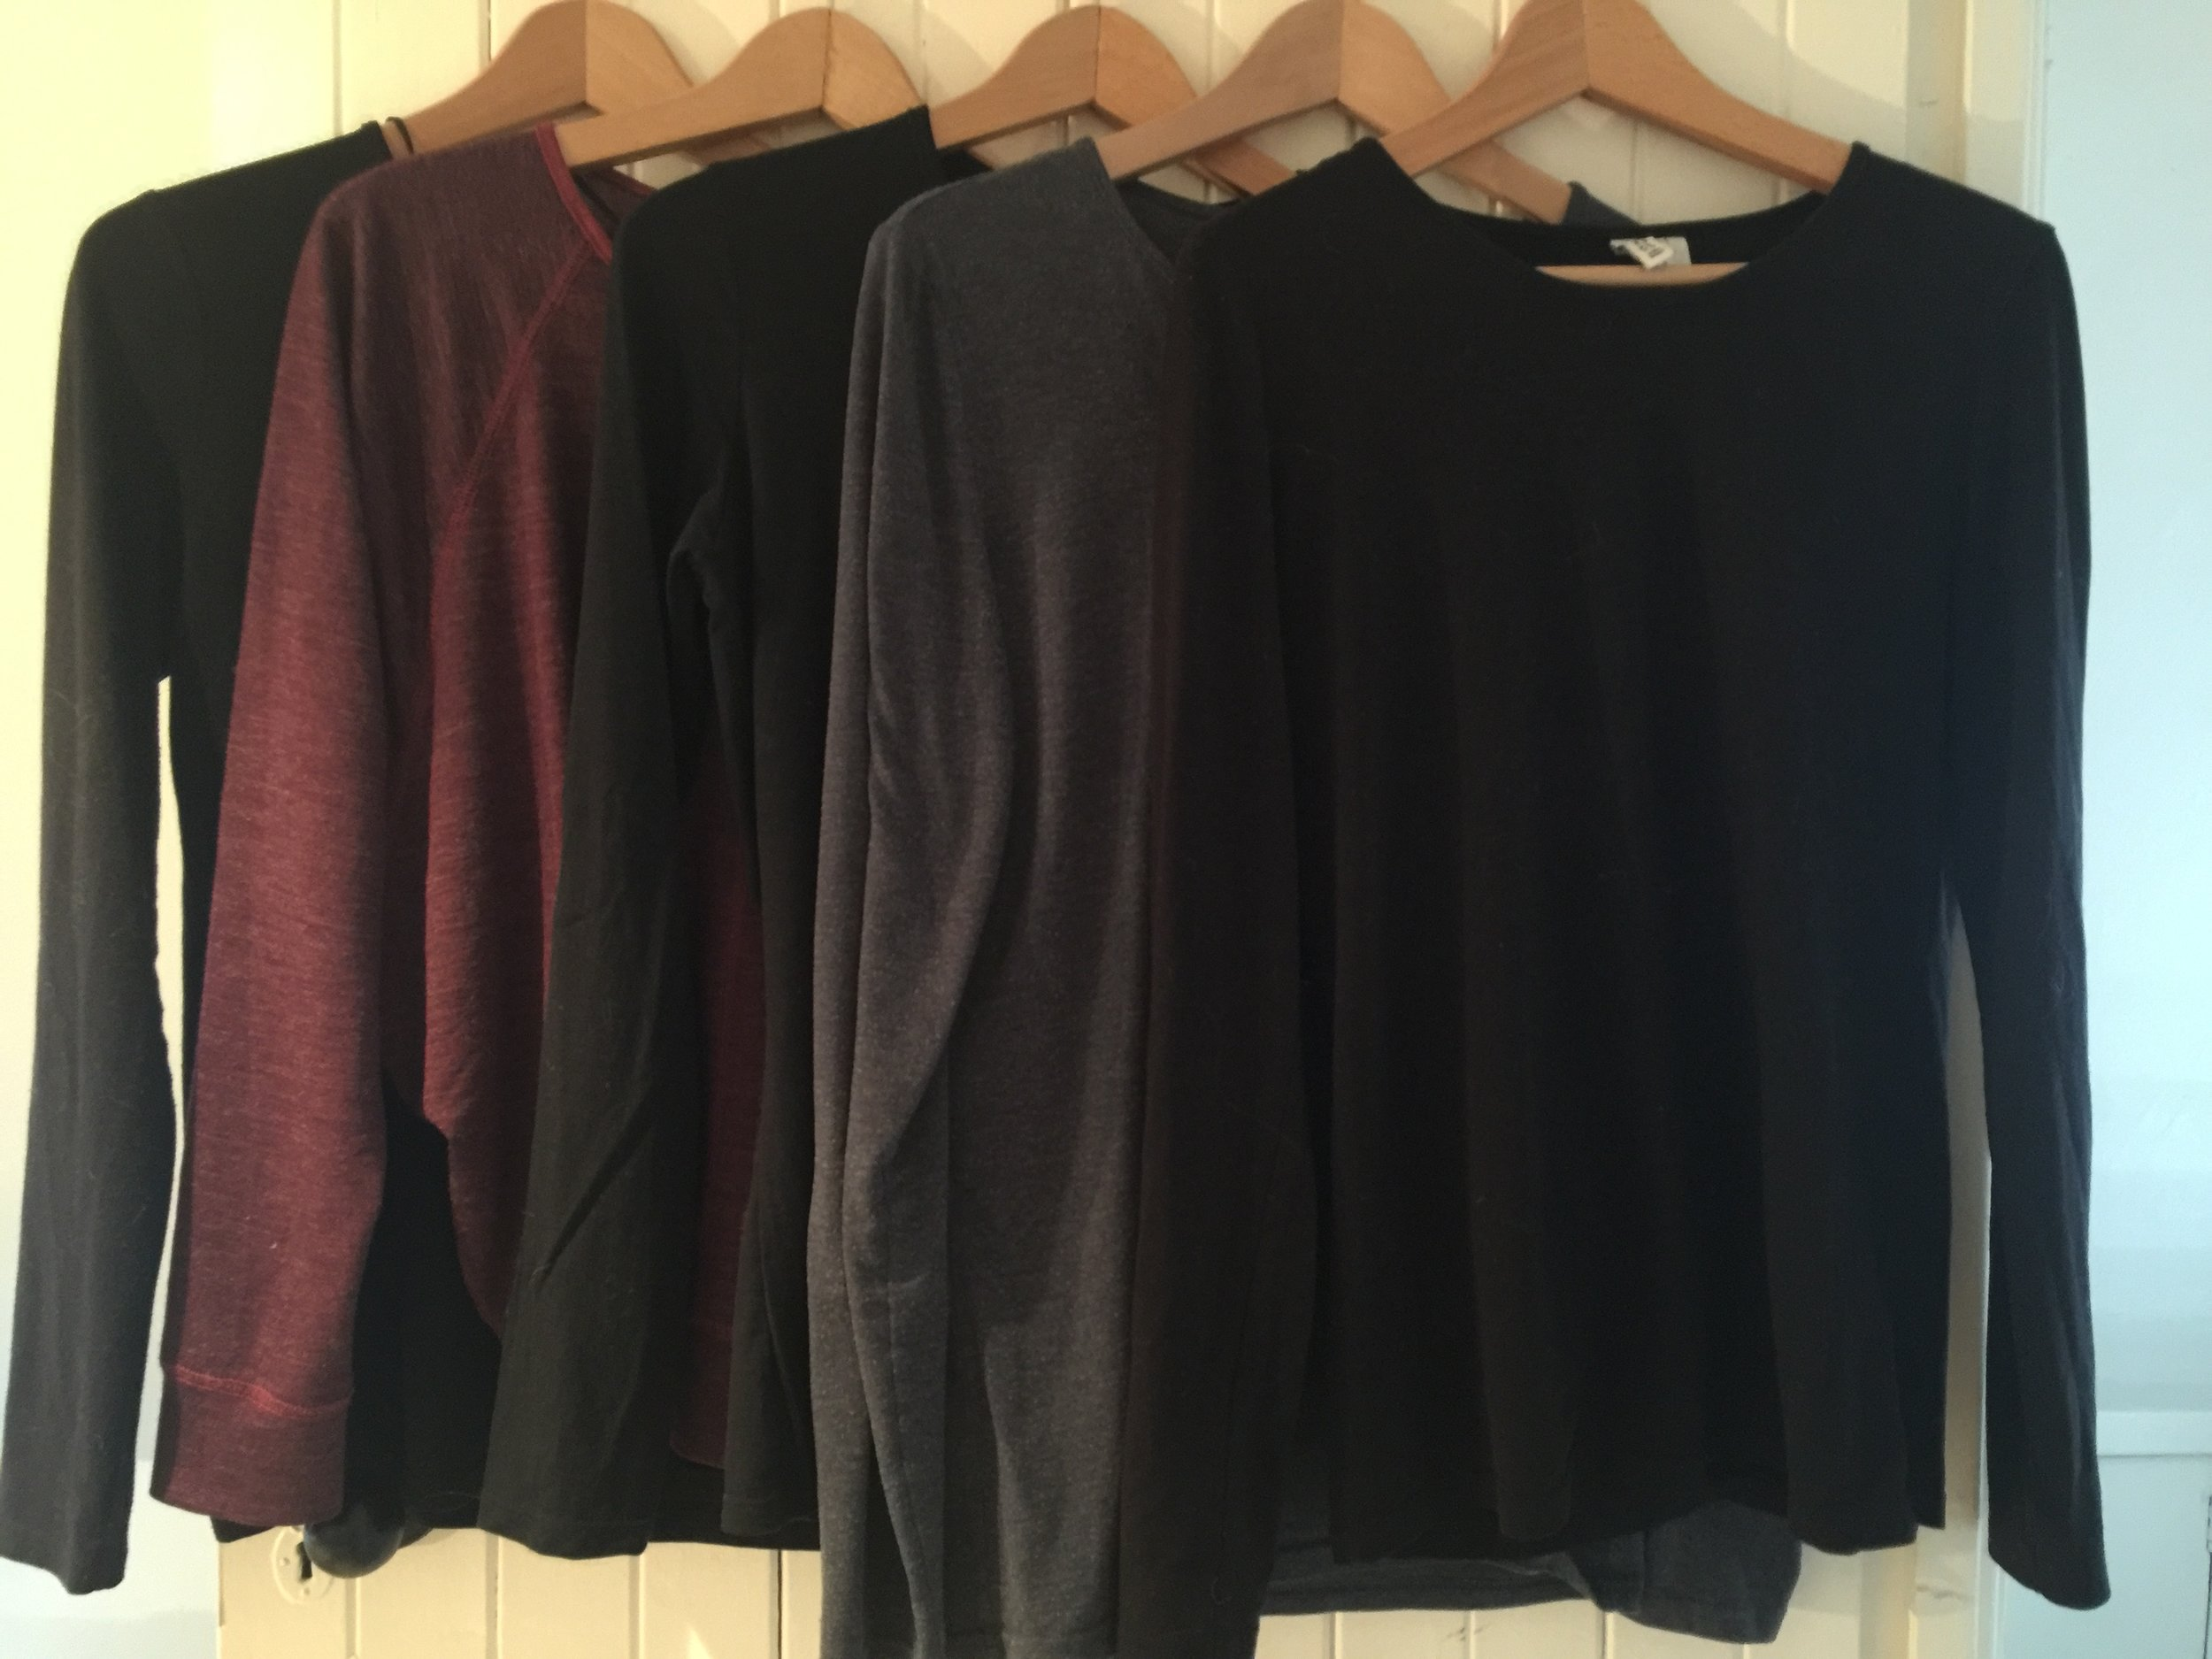 Travel Essentials - 5 Long Sleeve T's